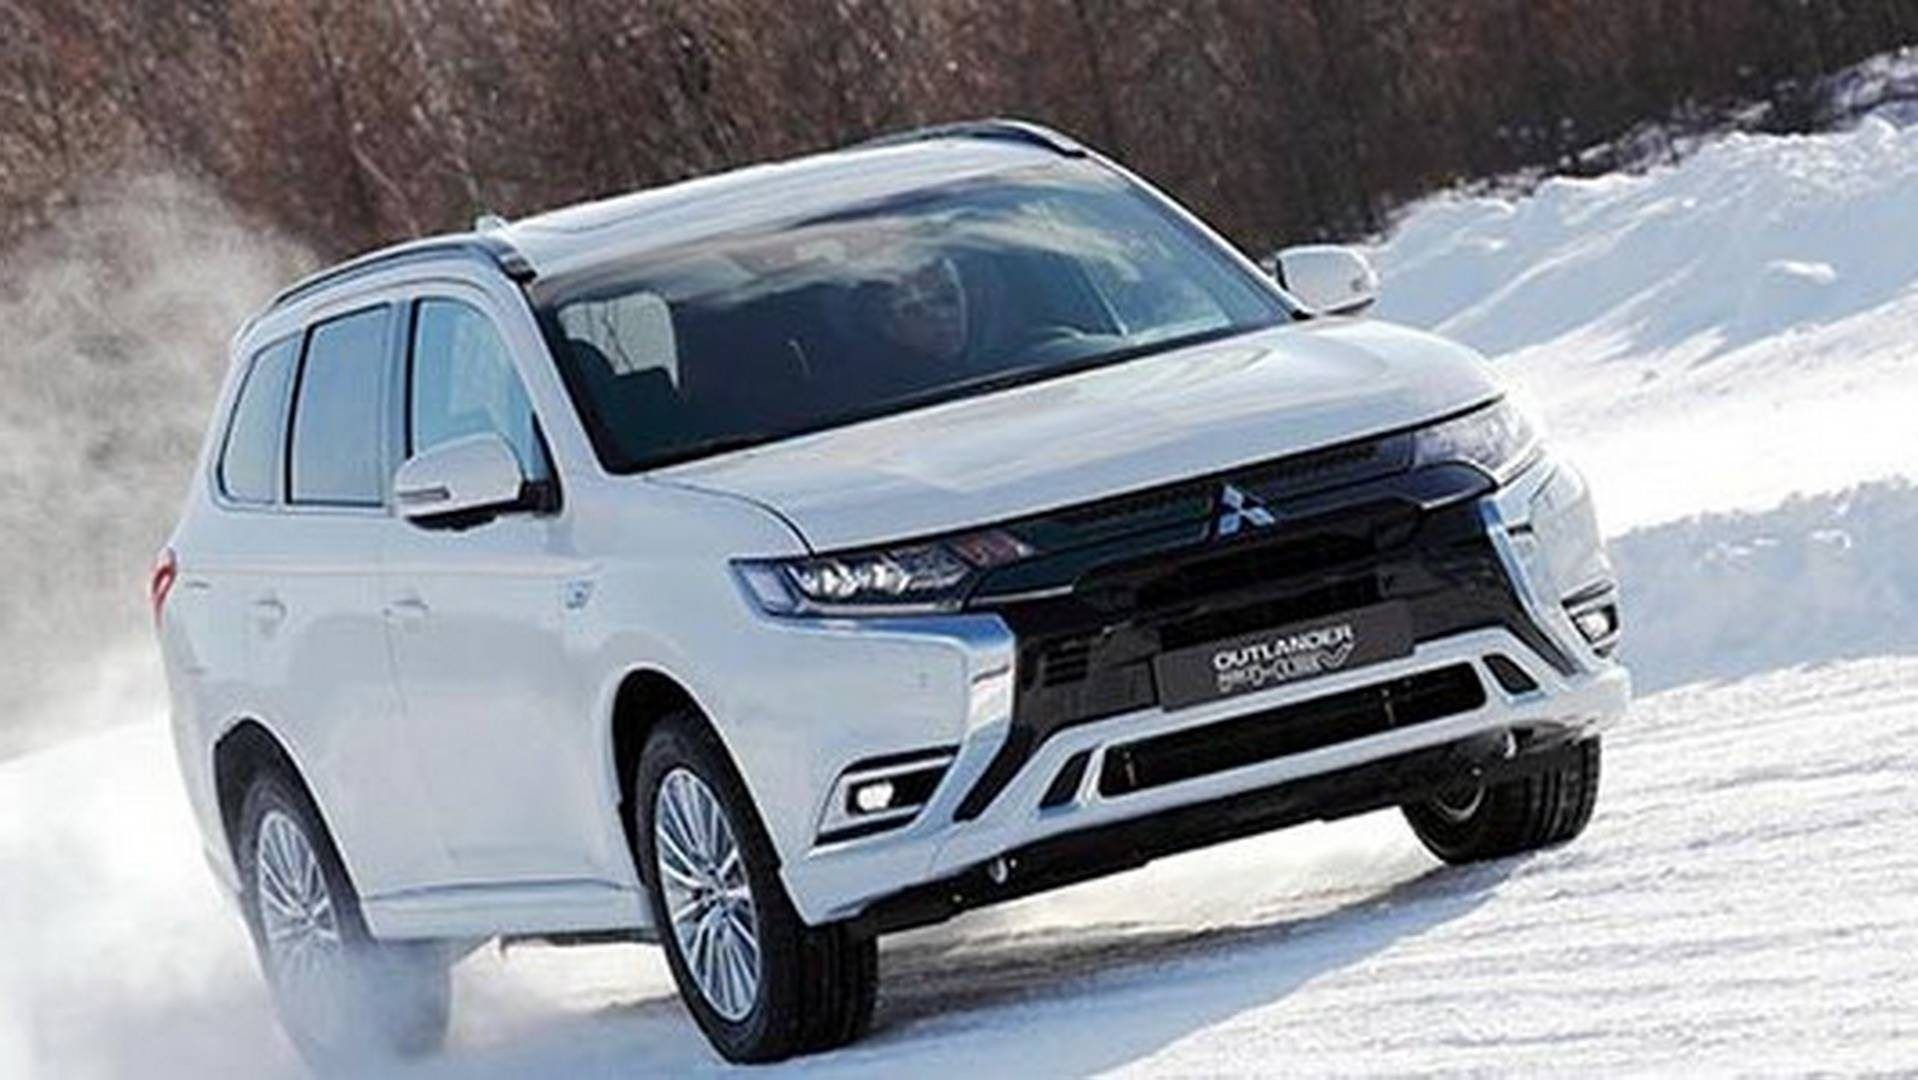 2019 Mitsubishi Outlander Colors Release Date Price And Review Mitsubishi Outlander Mitsubishi Outlander Sport Mitsubishi